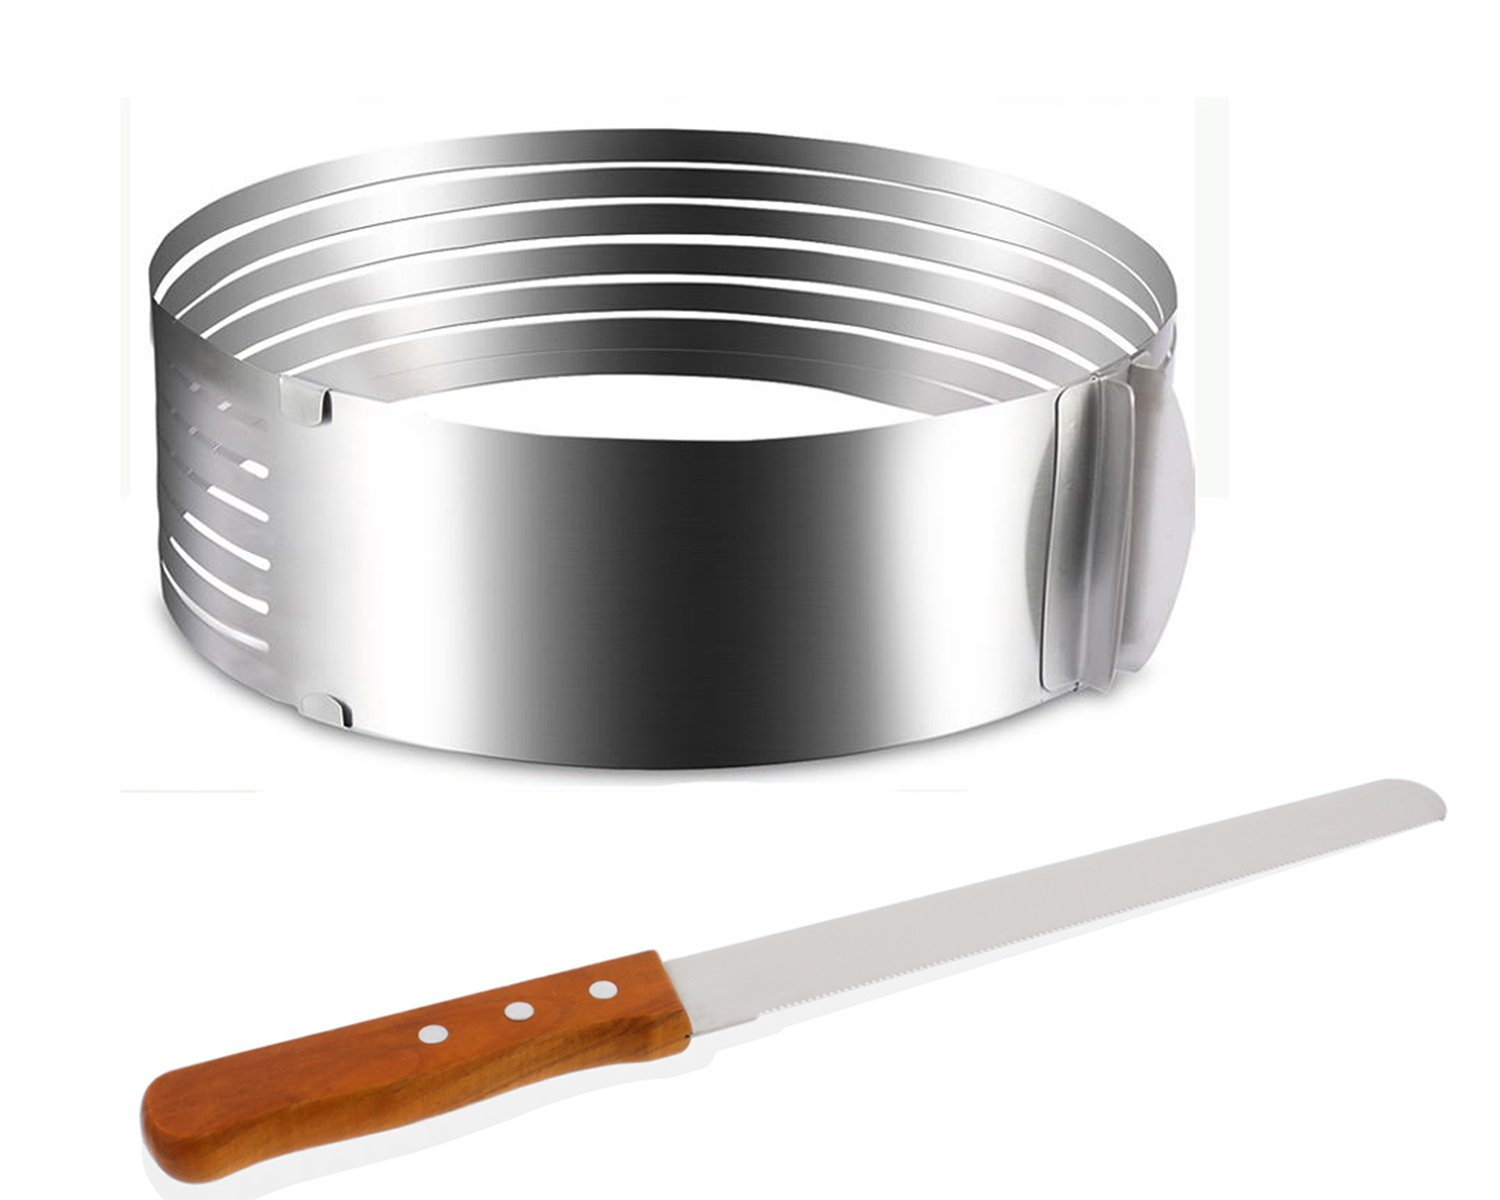 Cheftor Professional Adjustable Stainless Steel Layer Cake Expandable Mould Slicer Ring Form with Cake Knife